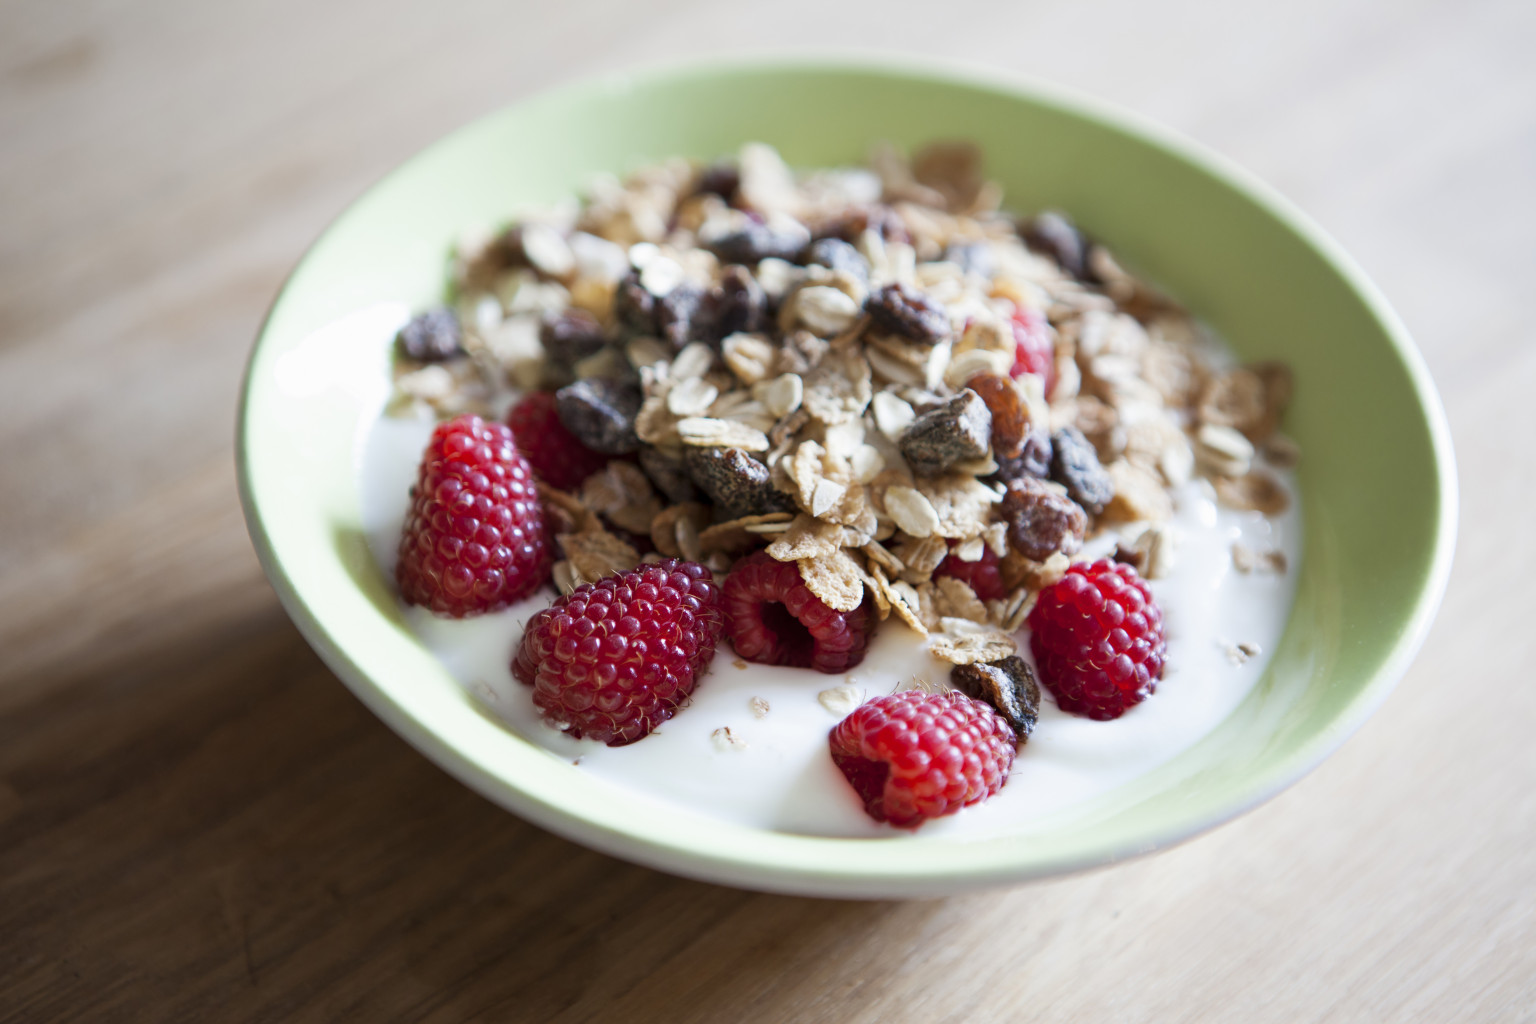 Healthy breakfast ideas 7 refreshing summer morning meals to beat the